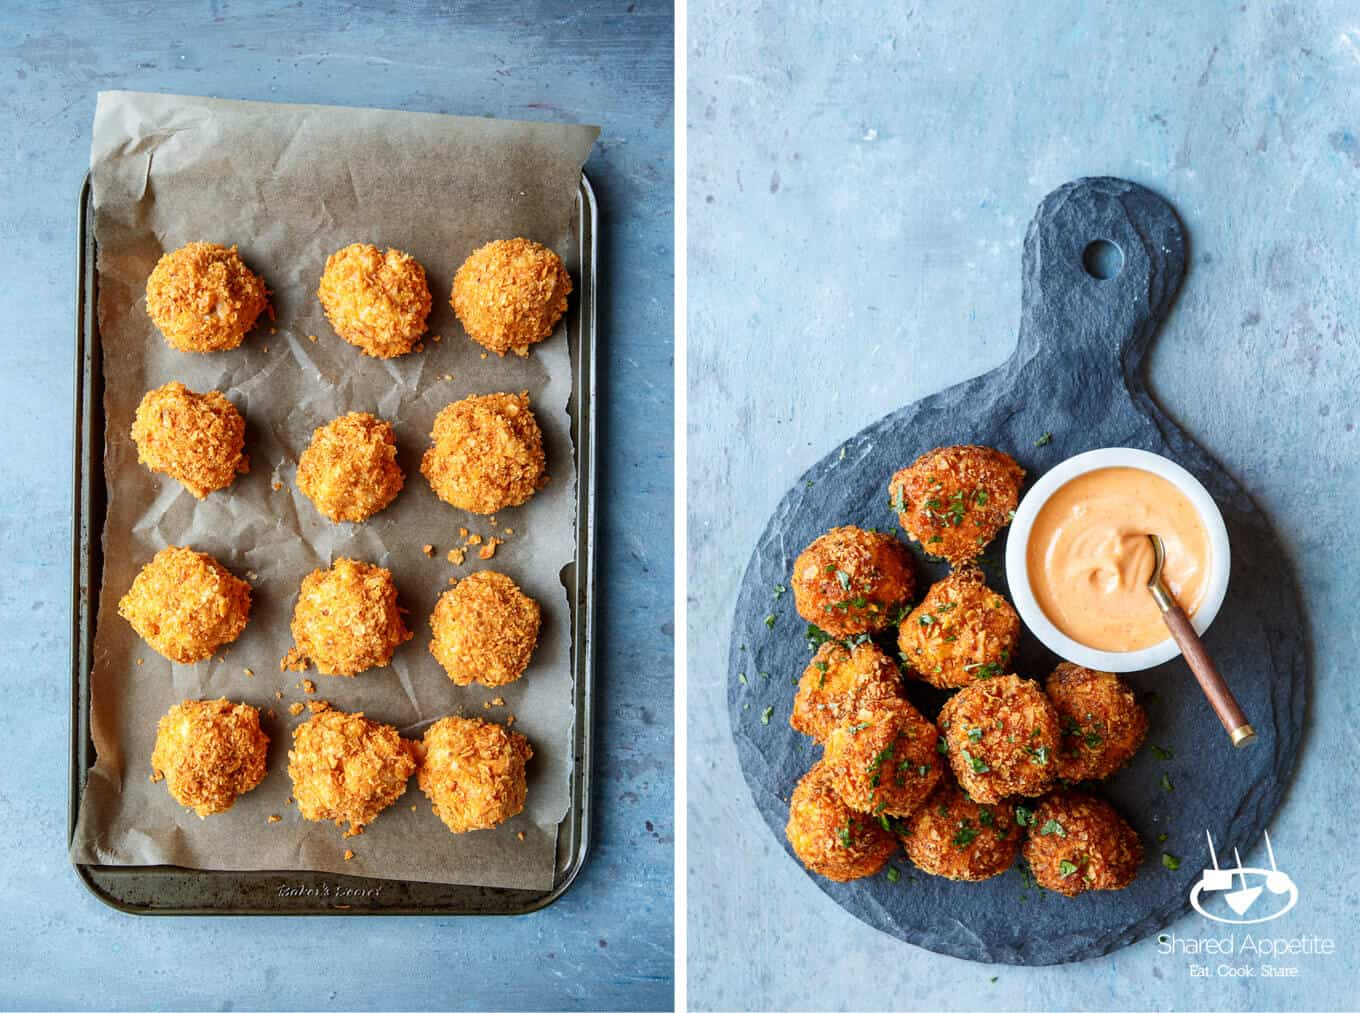 Before and After Frying the Doritos Mac and Cheese Balls | sharedappetite.com